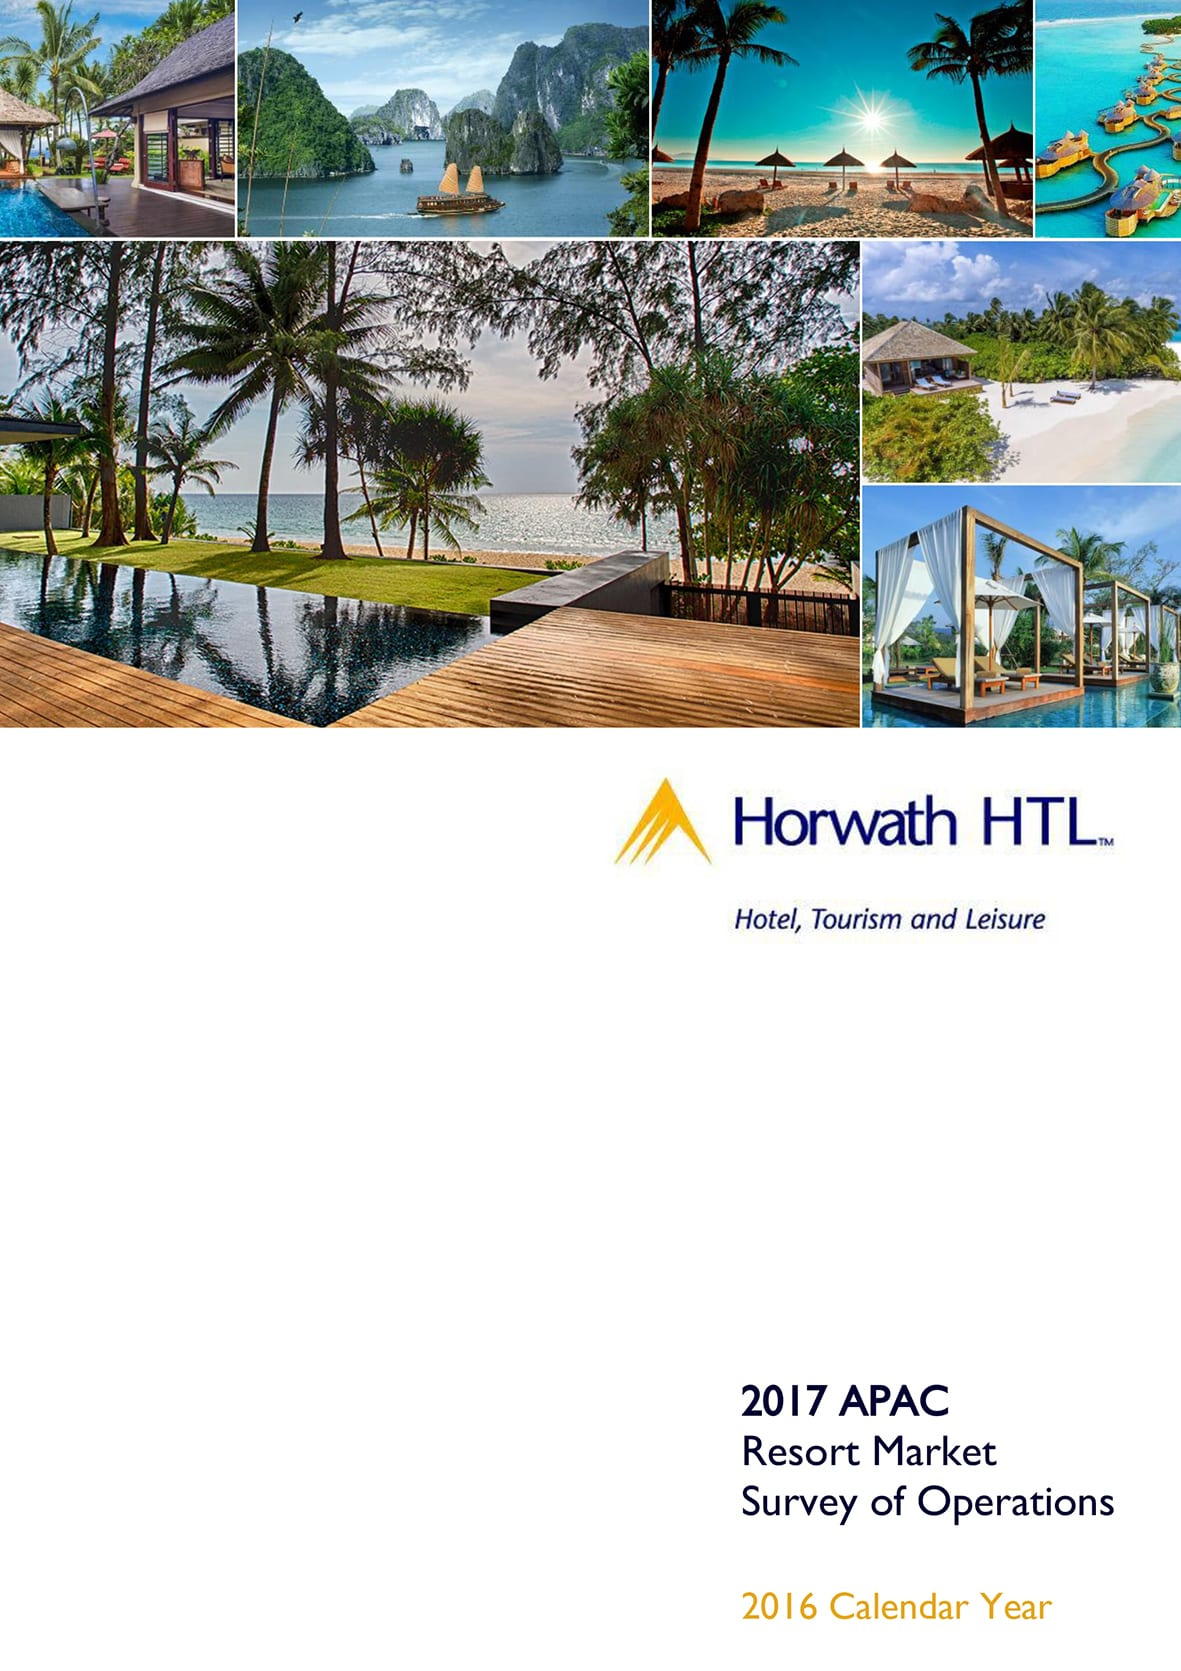 HHTL Annual Study 2017 APAC Resort Markets 5